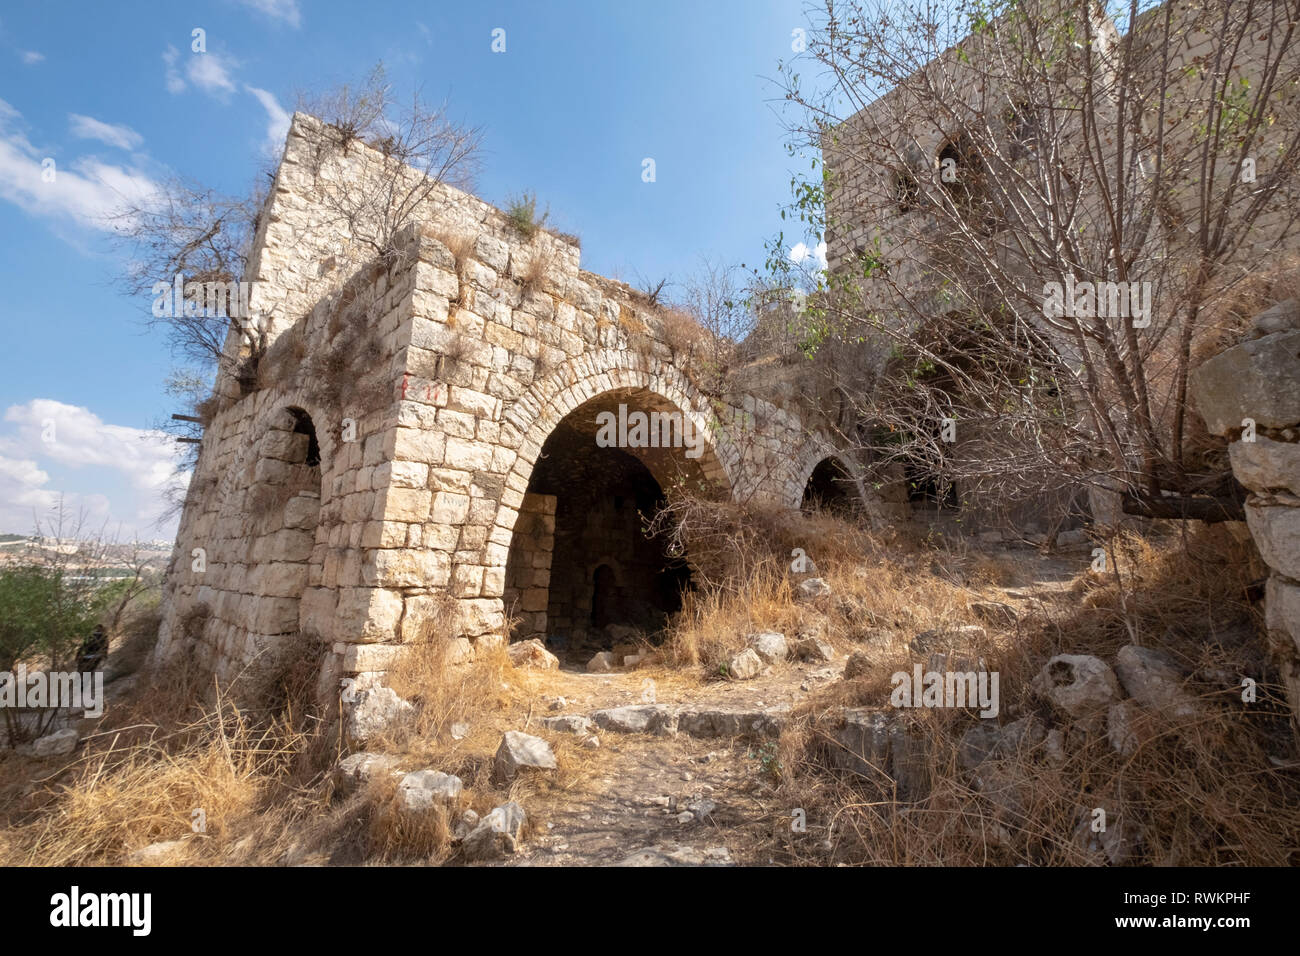 Deserted Arab village, Lifta, Jerusalem, Israel - Stock Image